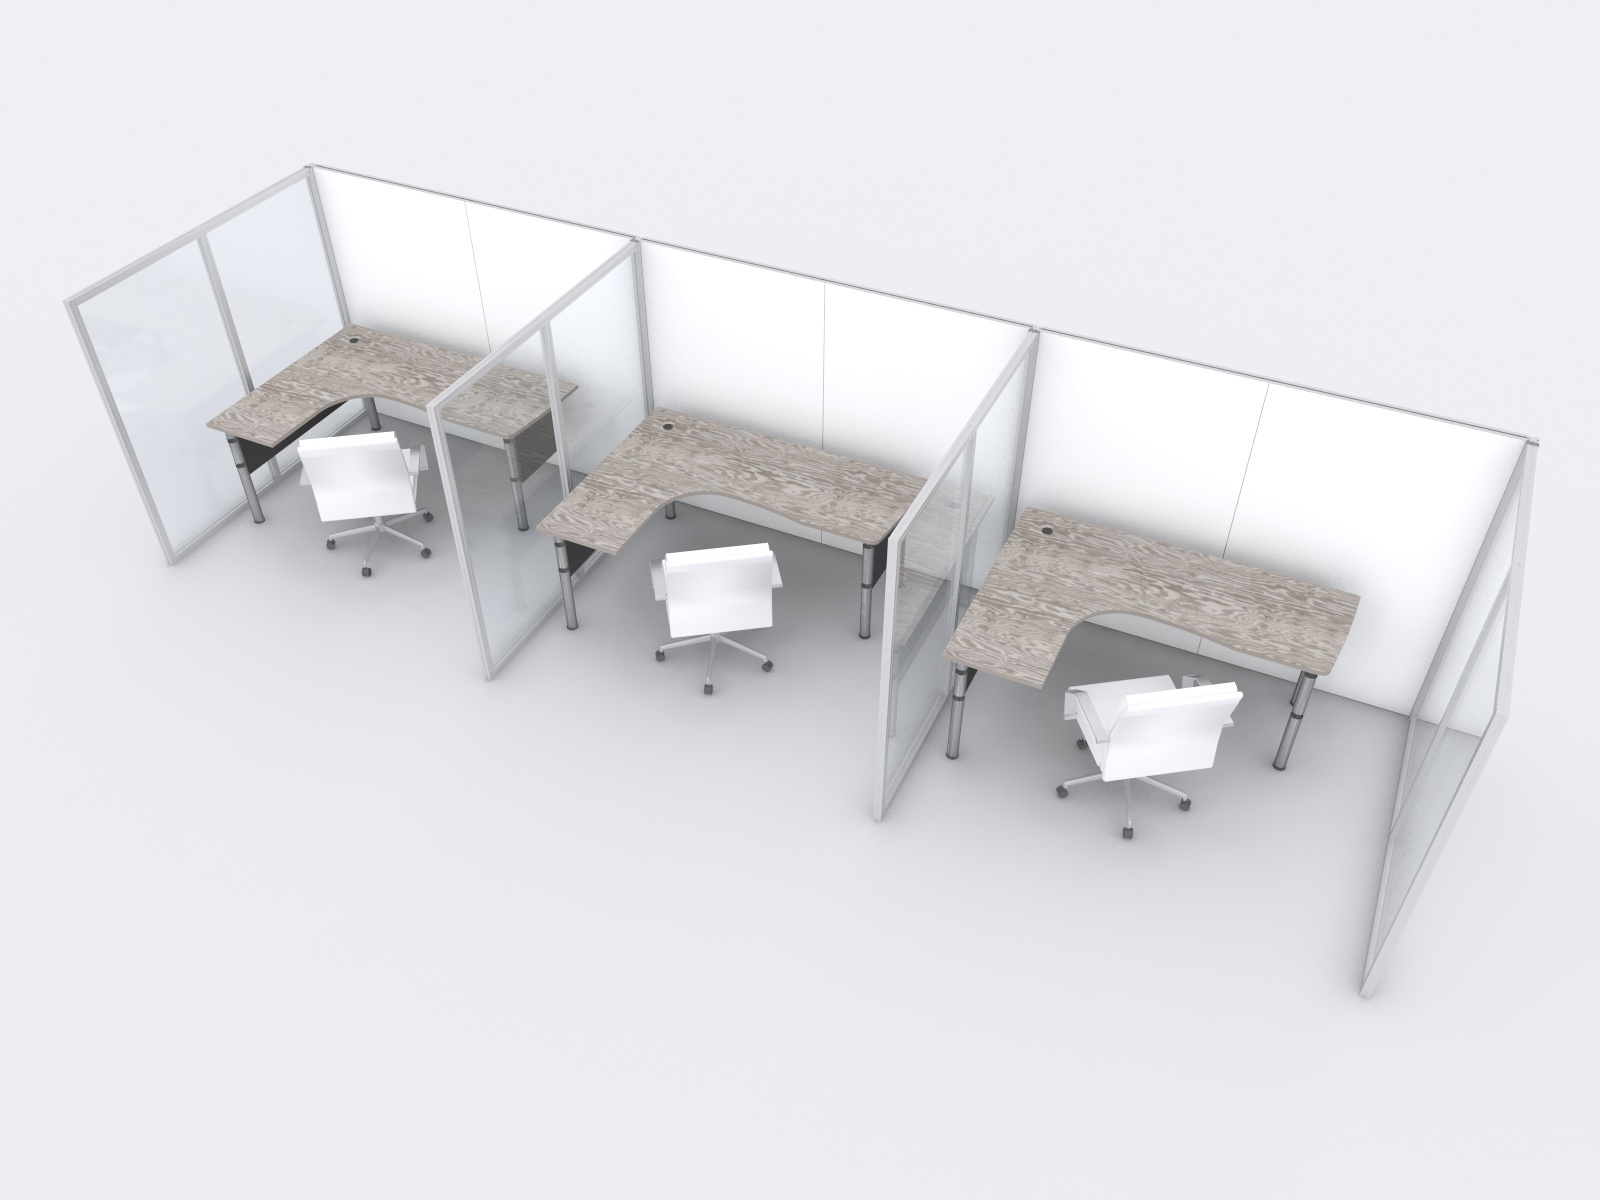 050520-Office-Pod-Triple-Modul-38-and-Gravitee-46x72-View-20000